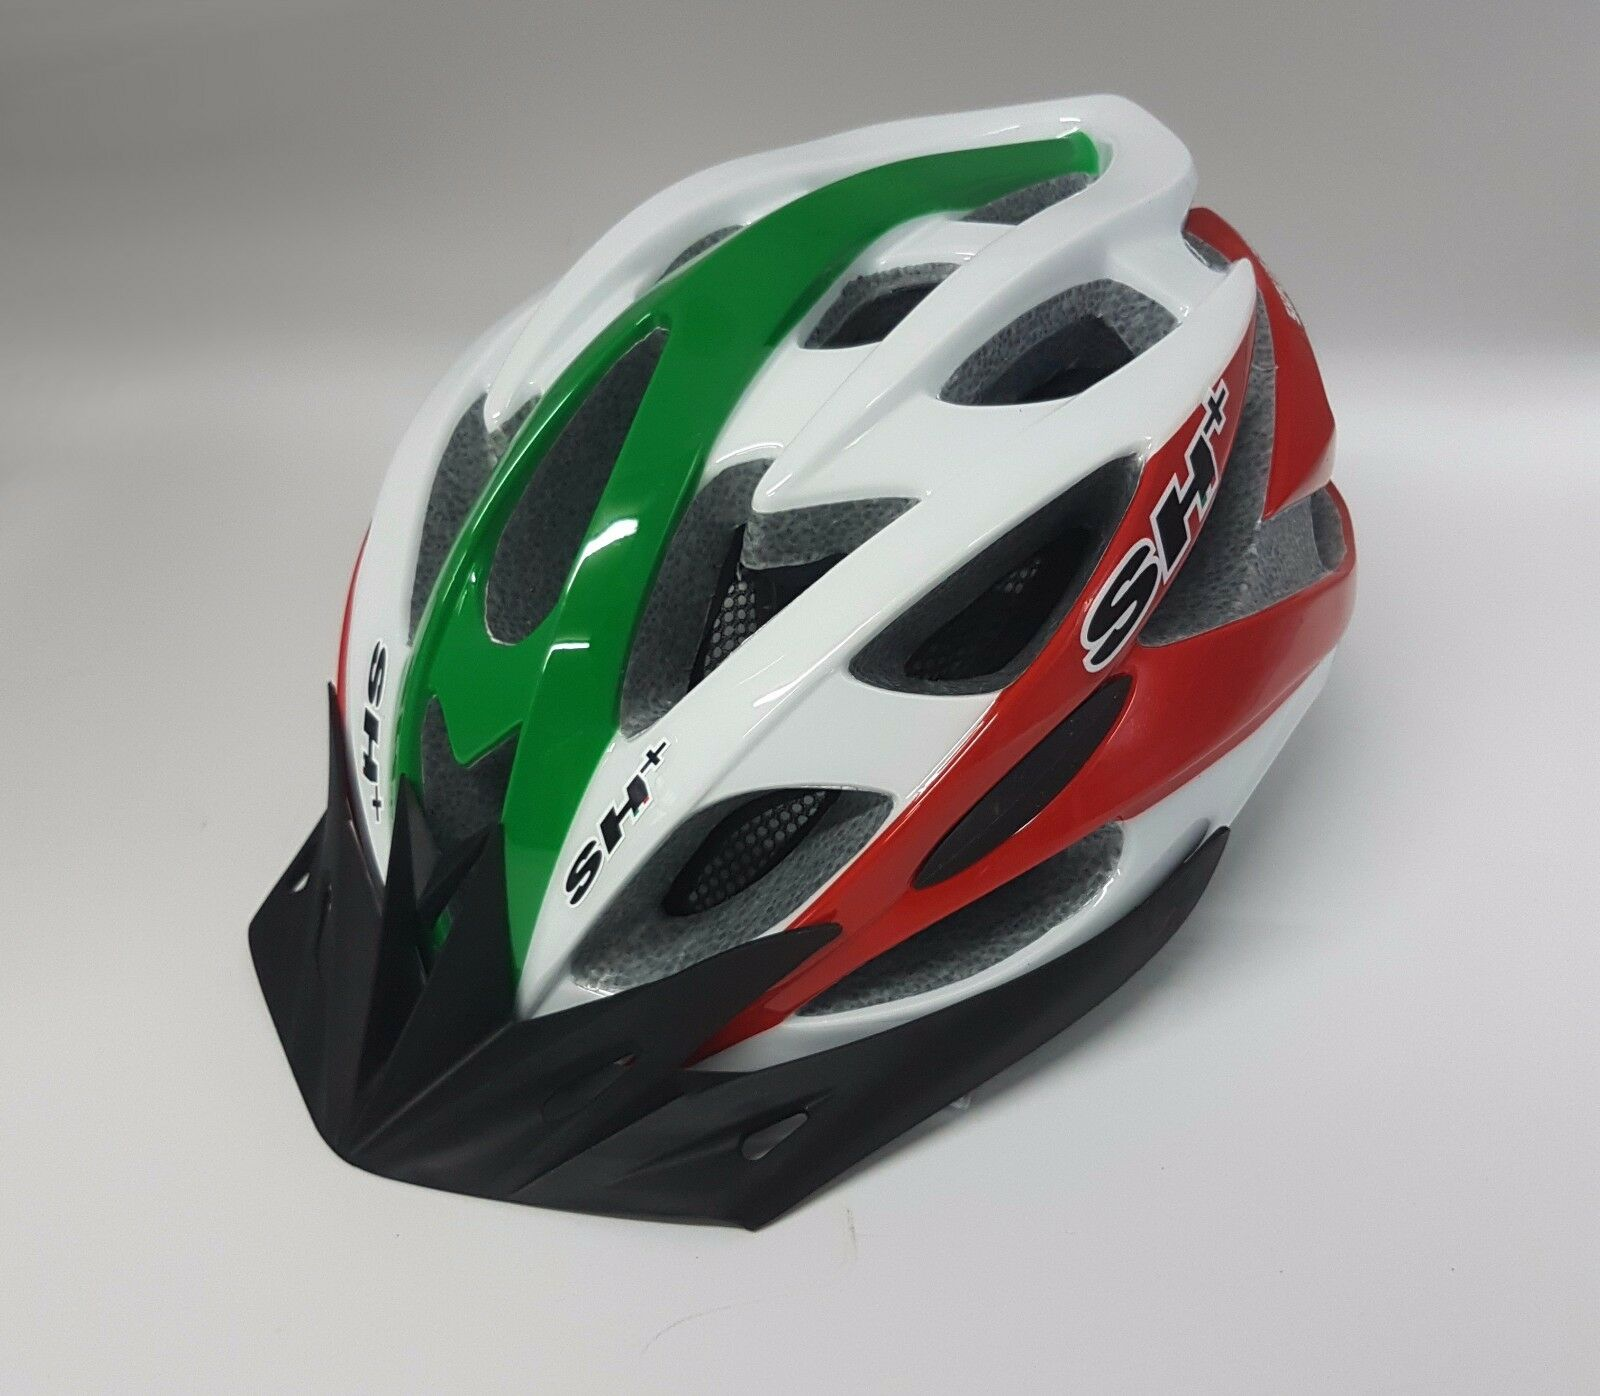 SH+   Sniper Safety Road Cycling Bicycle Helmet Red White Green L-XL 59-61cm  online retailers